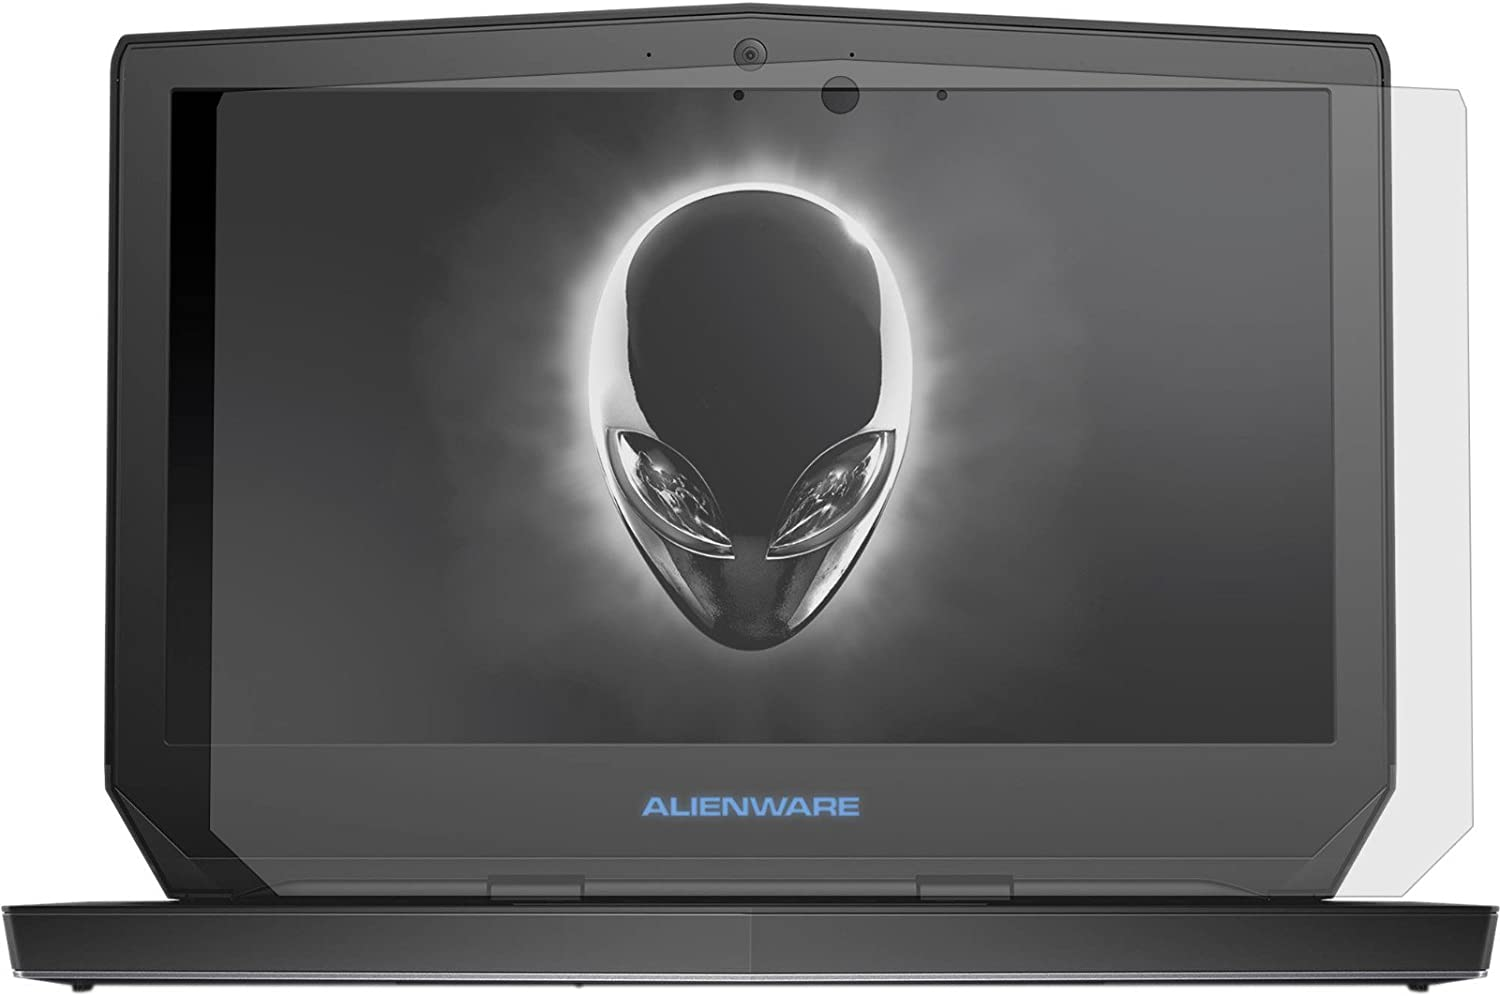 PcProfessional Screen Protector Same day shipping Set of 2 R2 13 Alienware 1 Direct sale of manufacturer for